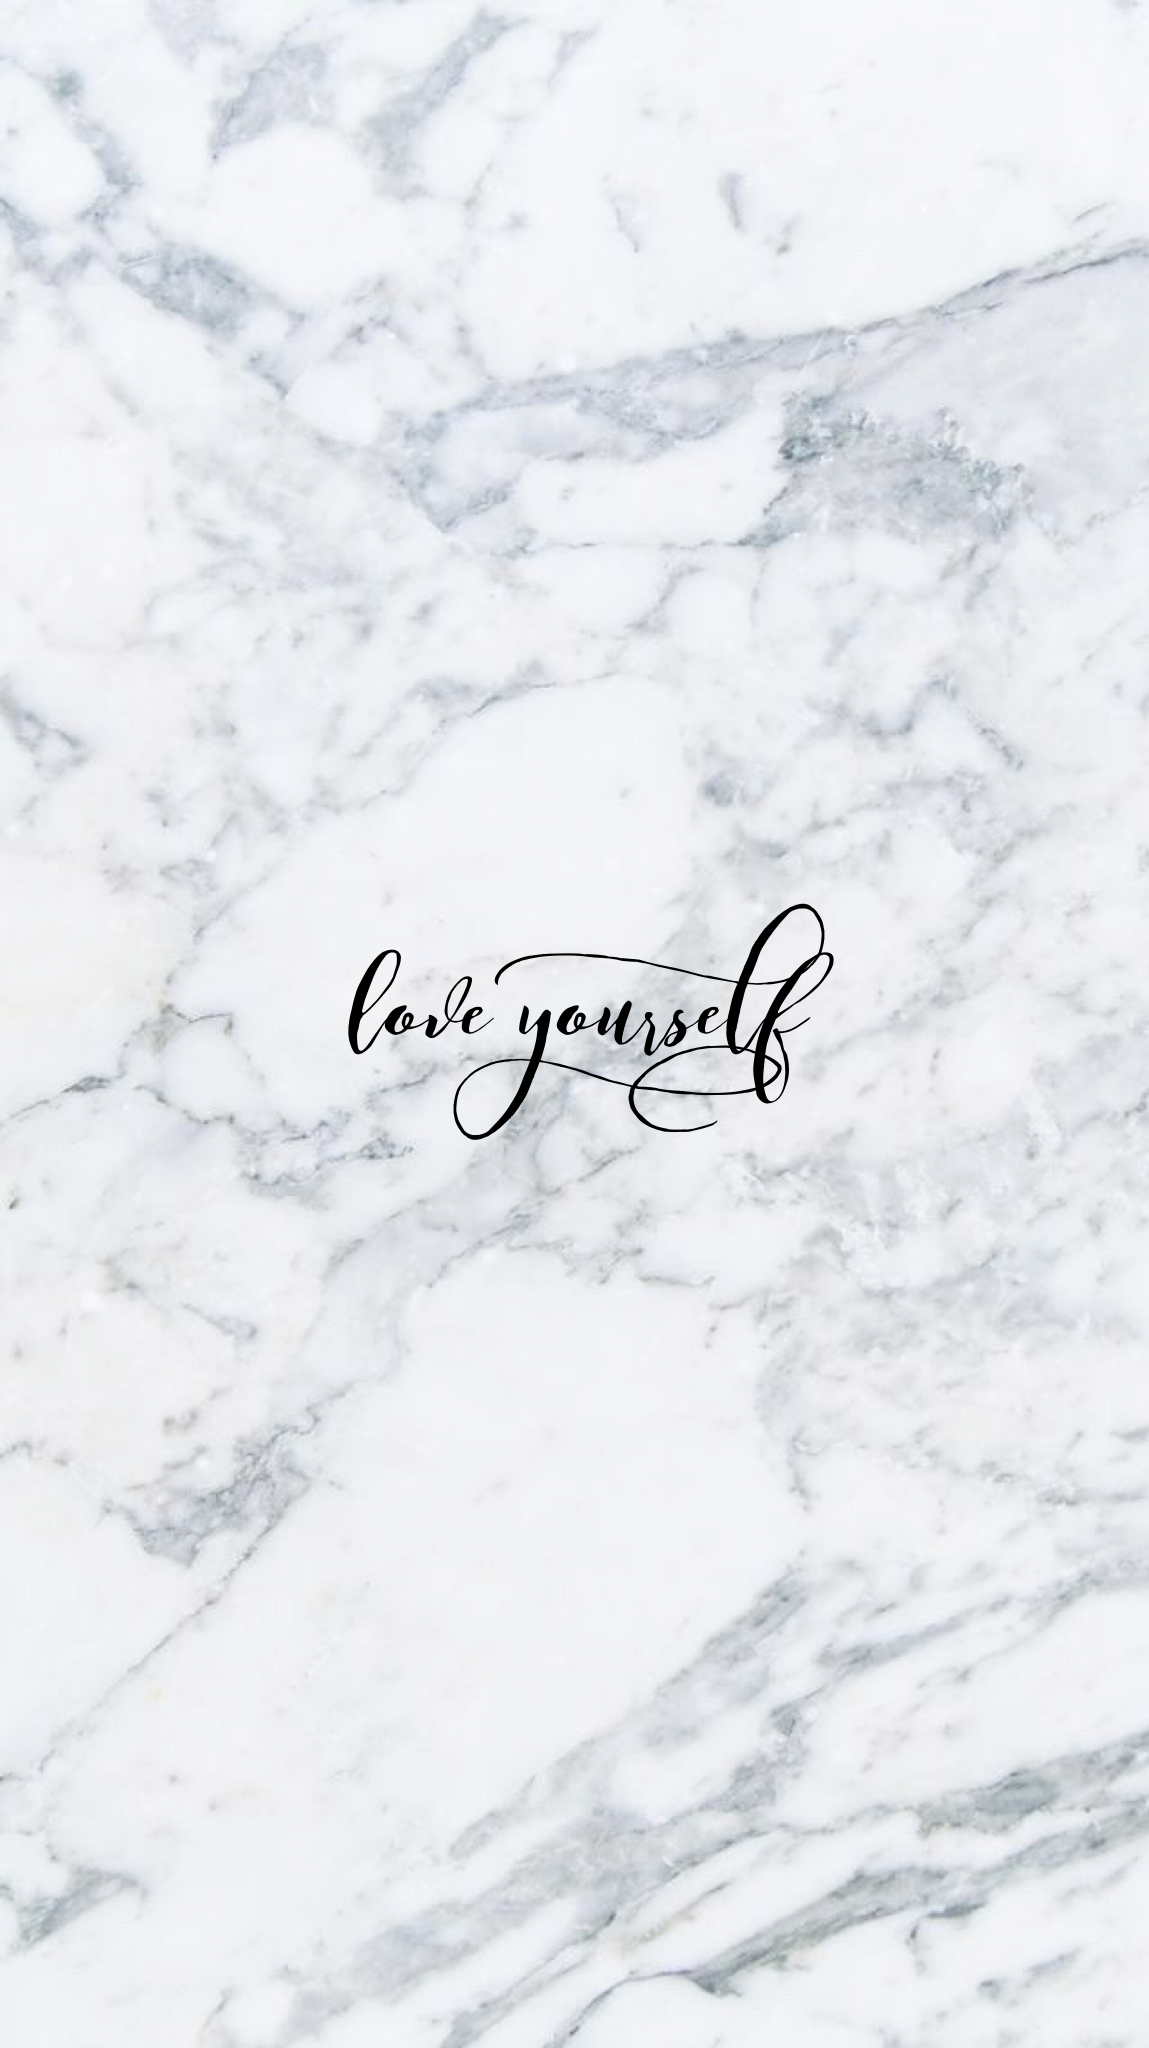 Love Yourself Wallpaper Iphone : Love Yourself iPhone Wallpaper @EvaLand Fondos de iphone ...